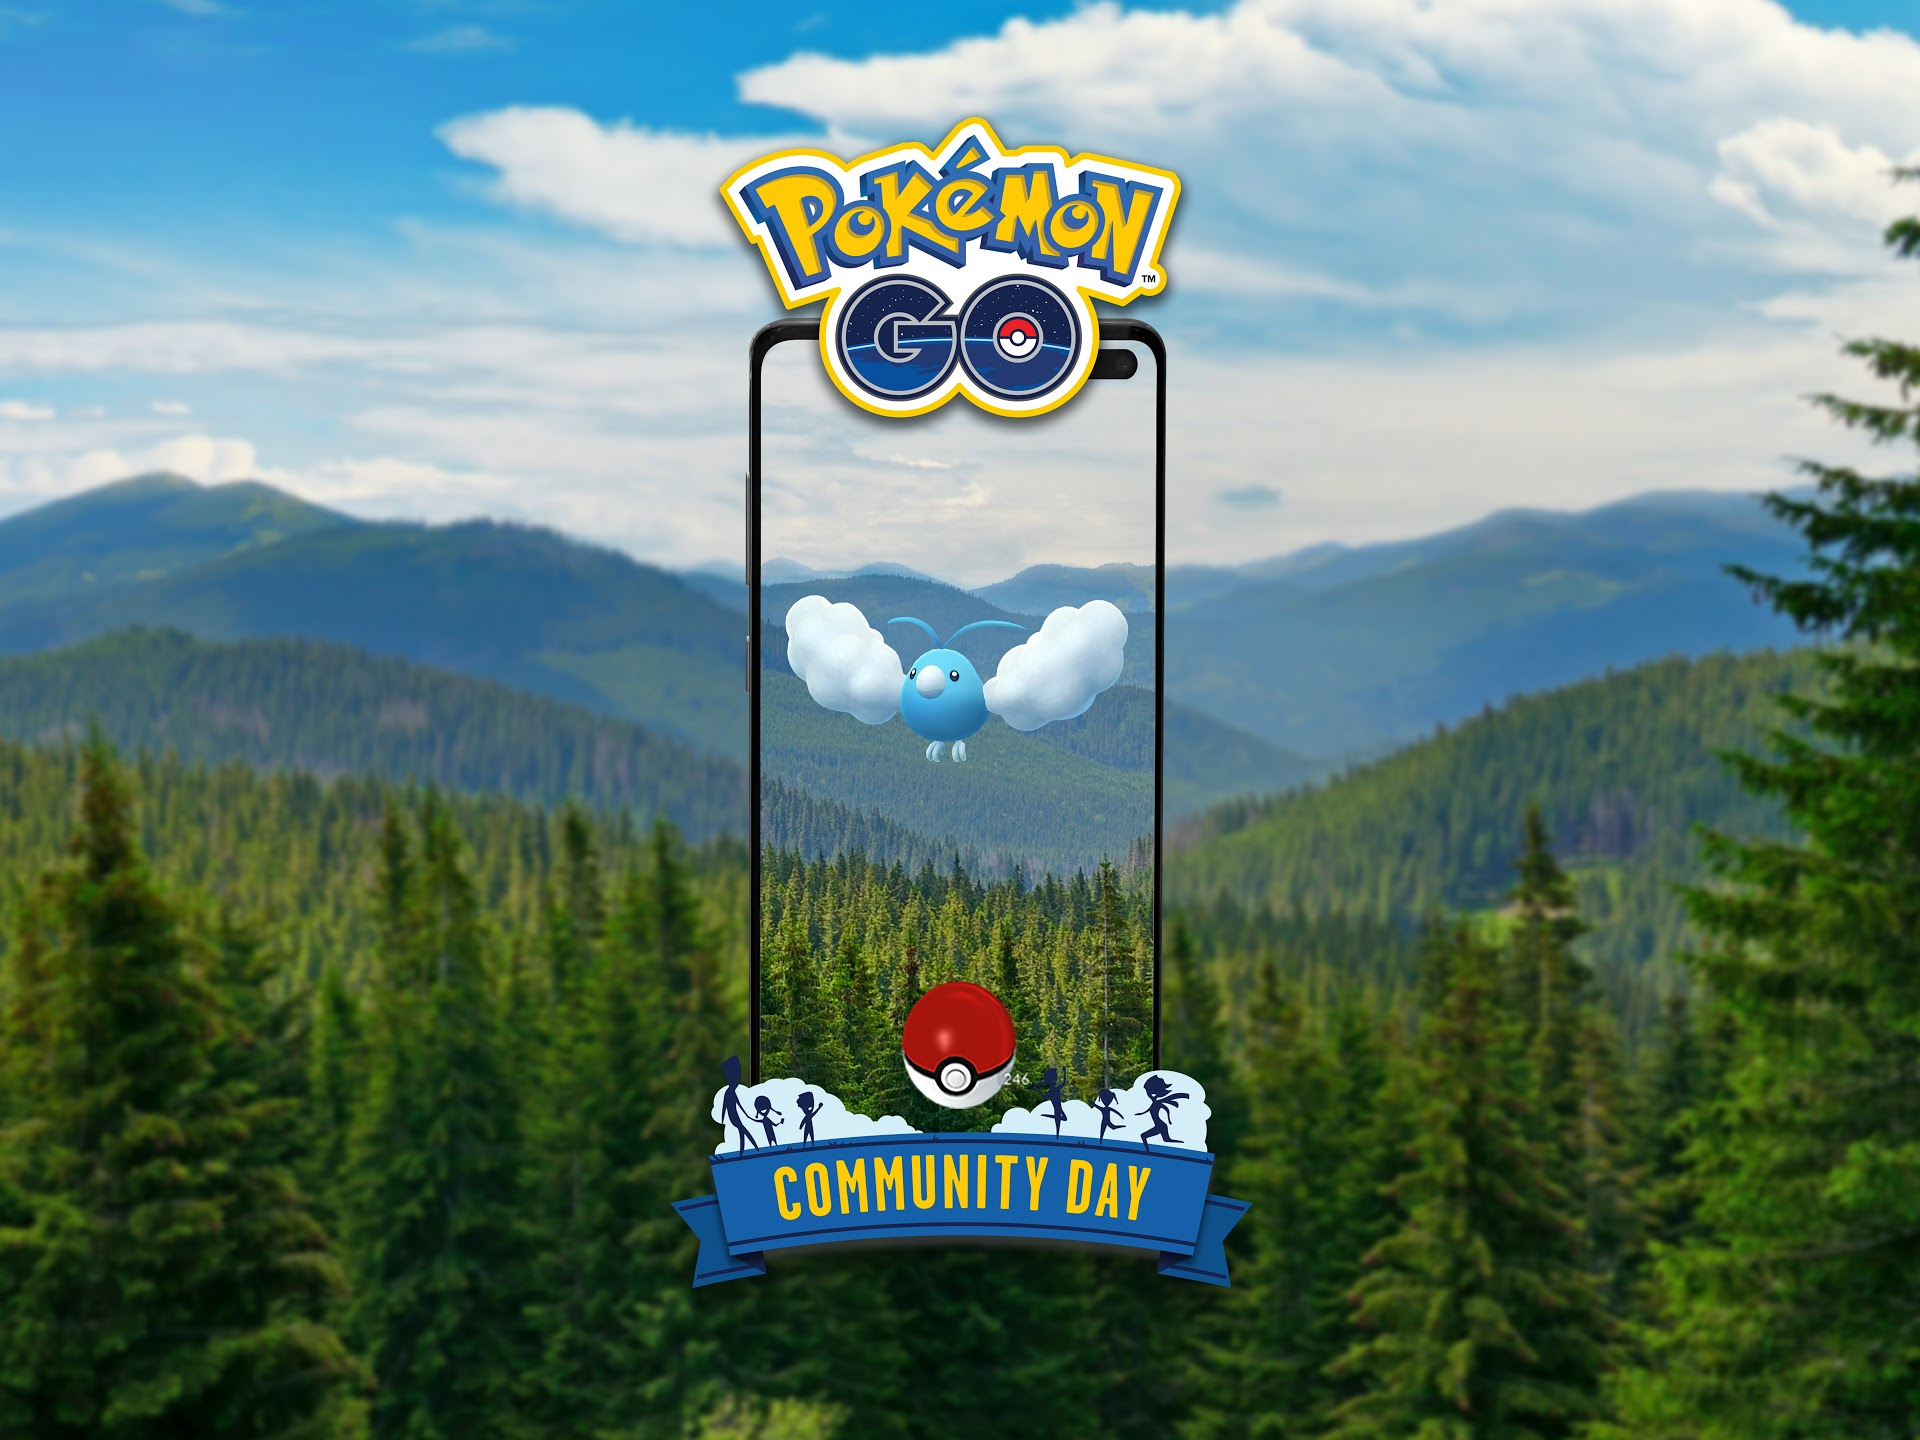 Swablu flies above a forest, framed by a smartphone